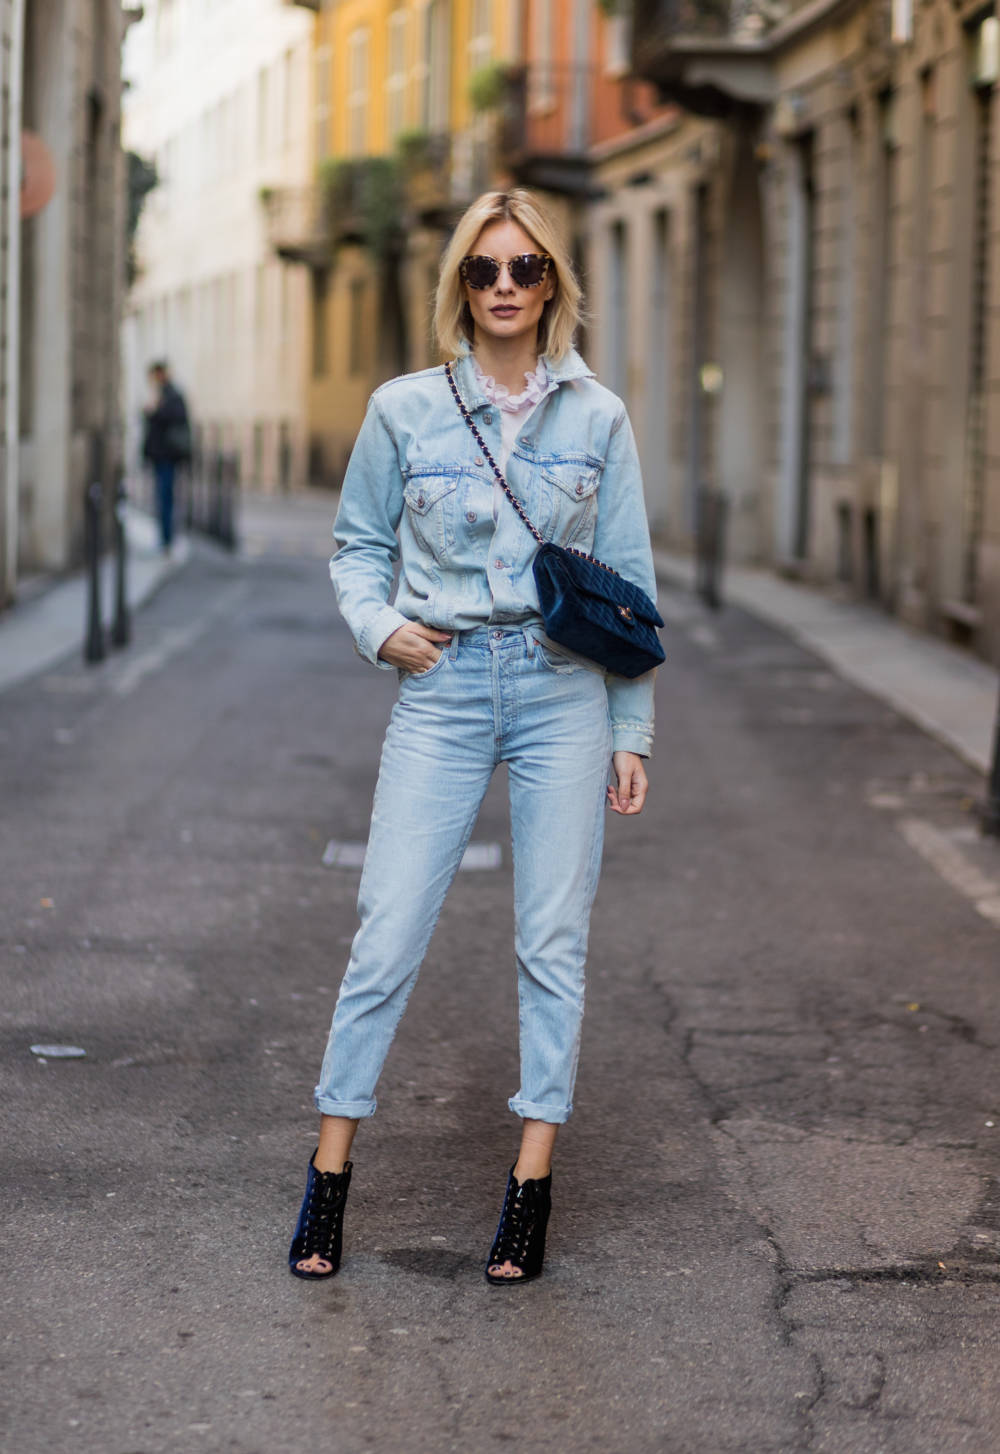 Denim Streetstyle